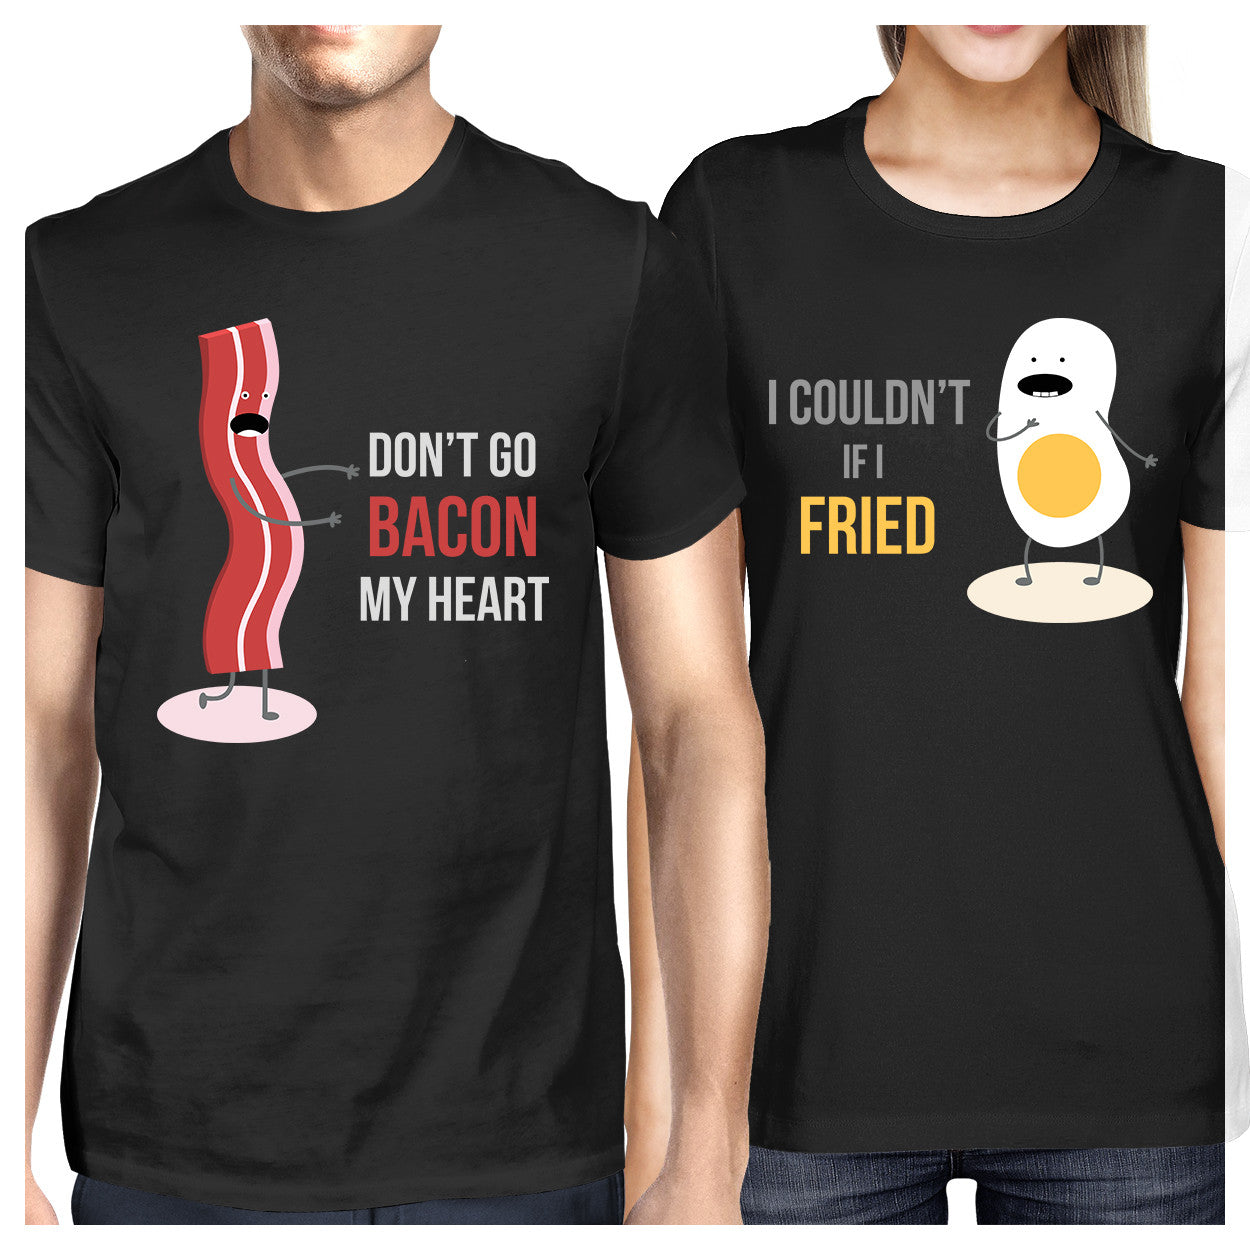 f51cc6db9b Funny Bacon and Egg Matching Couple Shirts - 365 IN LOVE - Matching ...